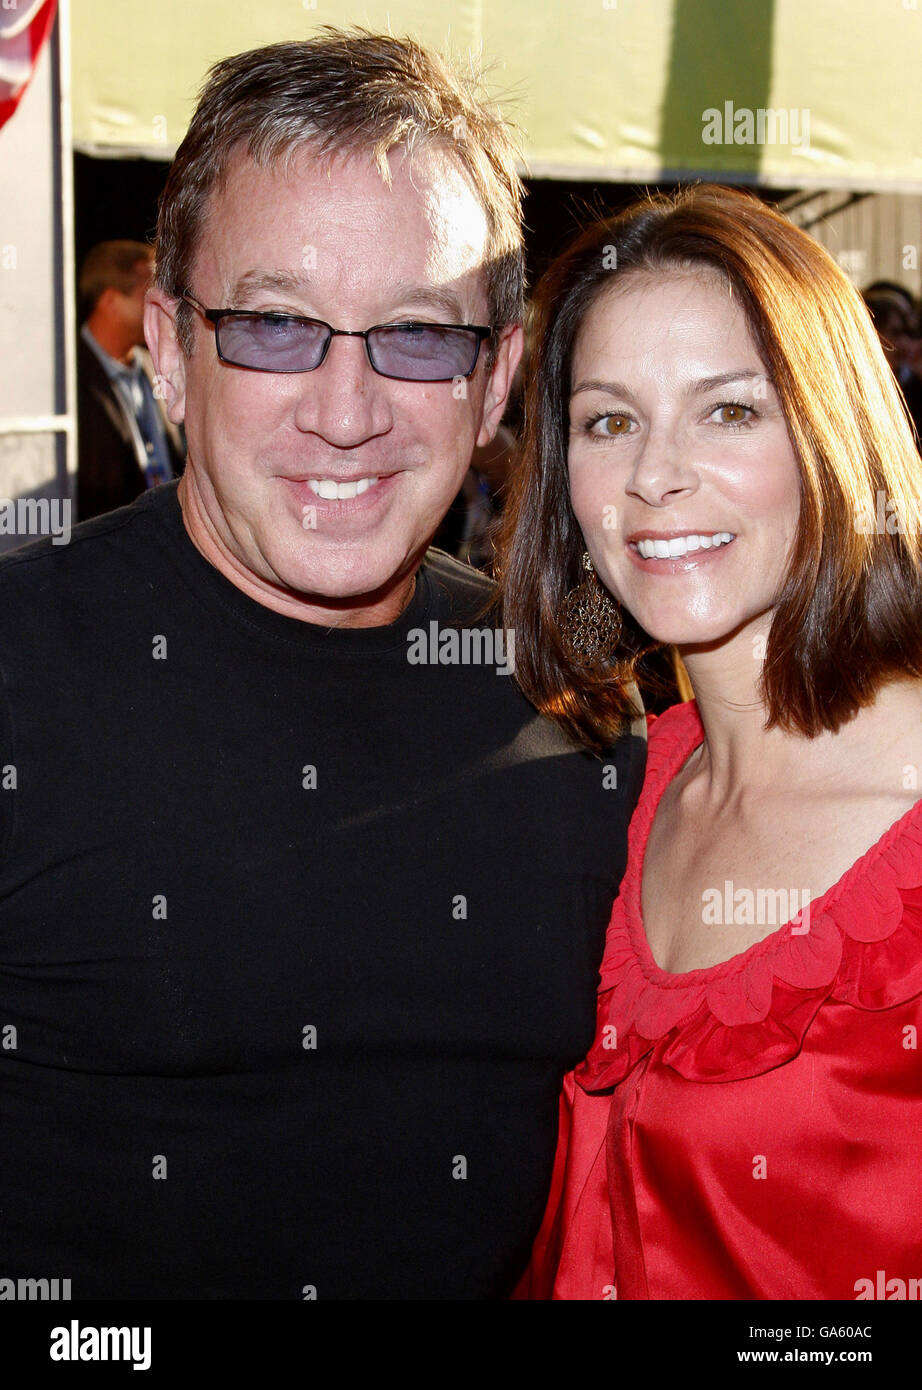 24/07/2008 - Hollywood - Actor Tim Allen and Jane Allen at the World Premiere of 'Swing Vote' held at the - Stock Image